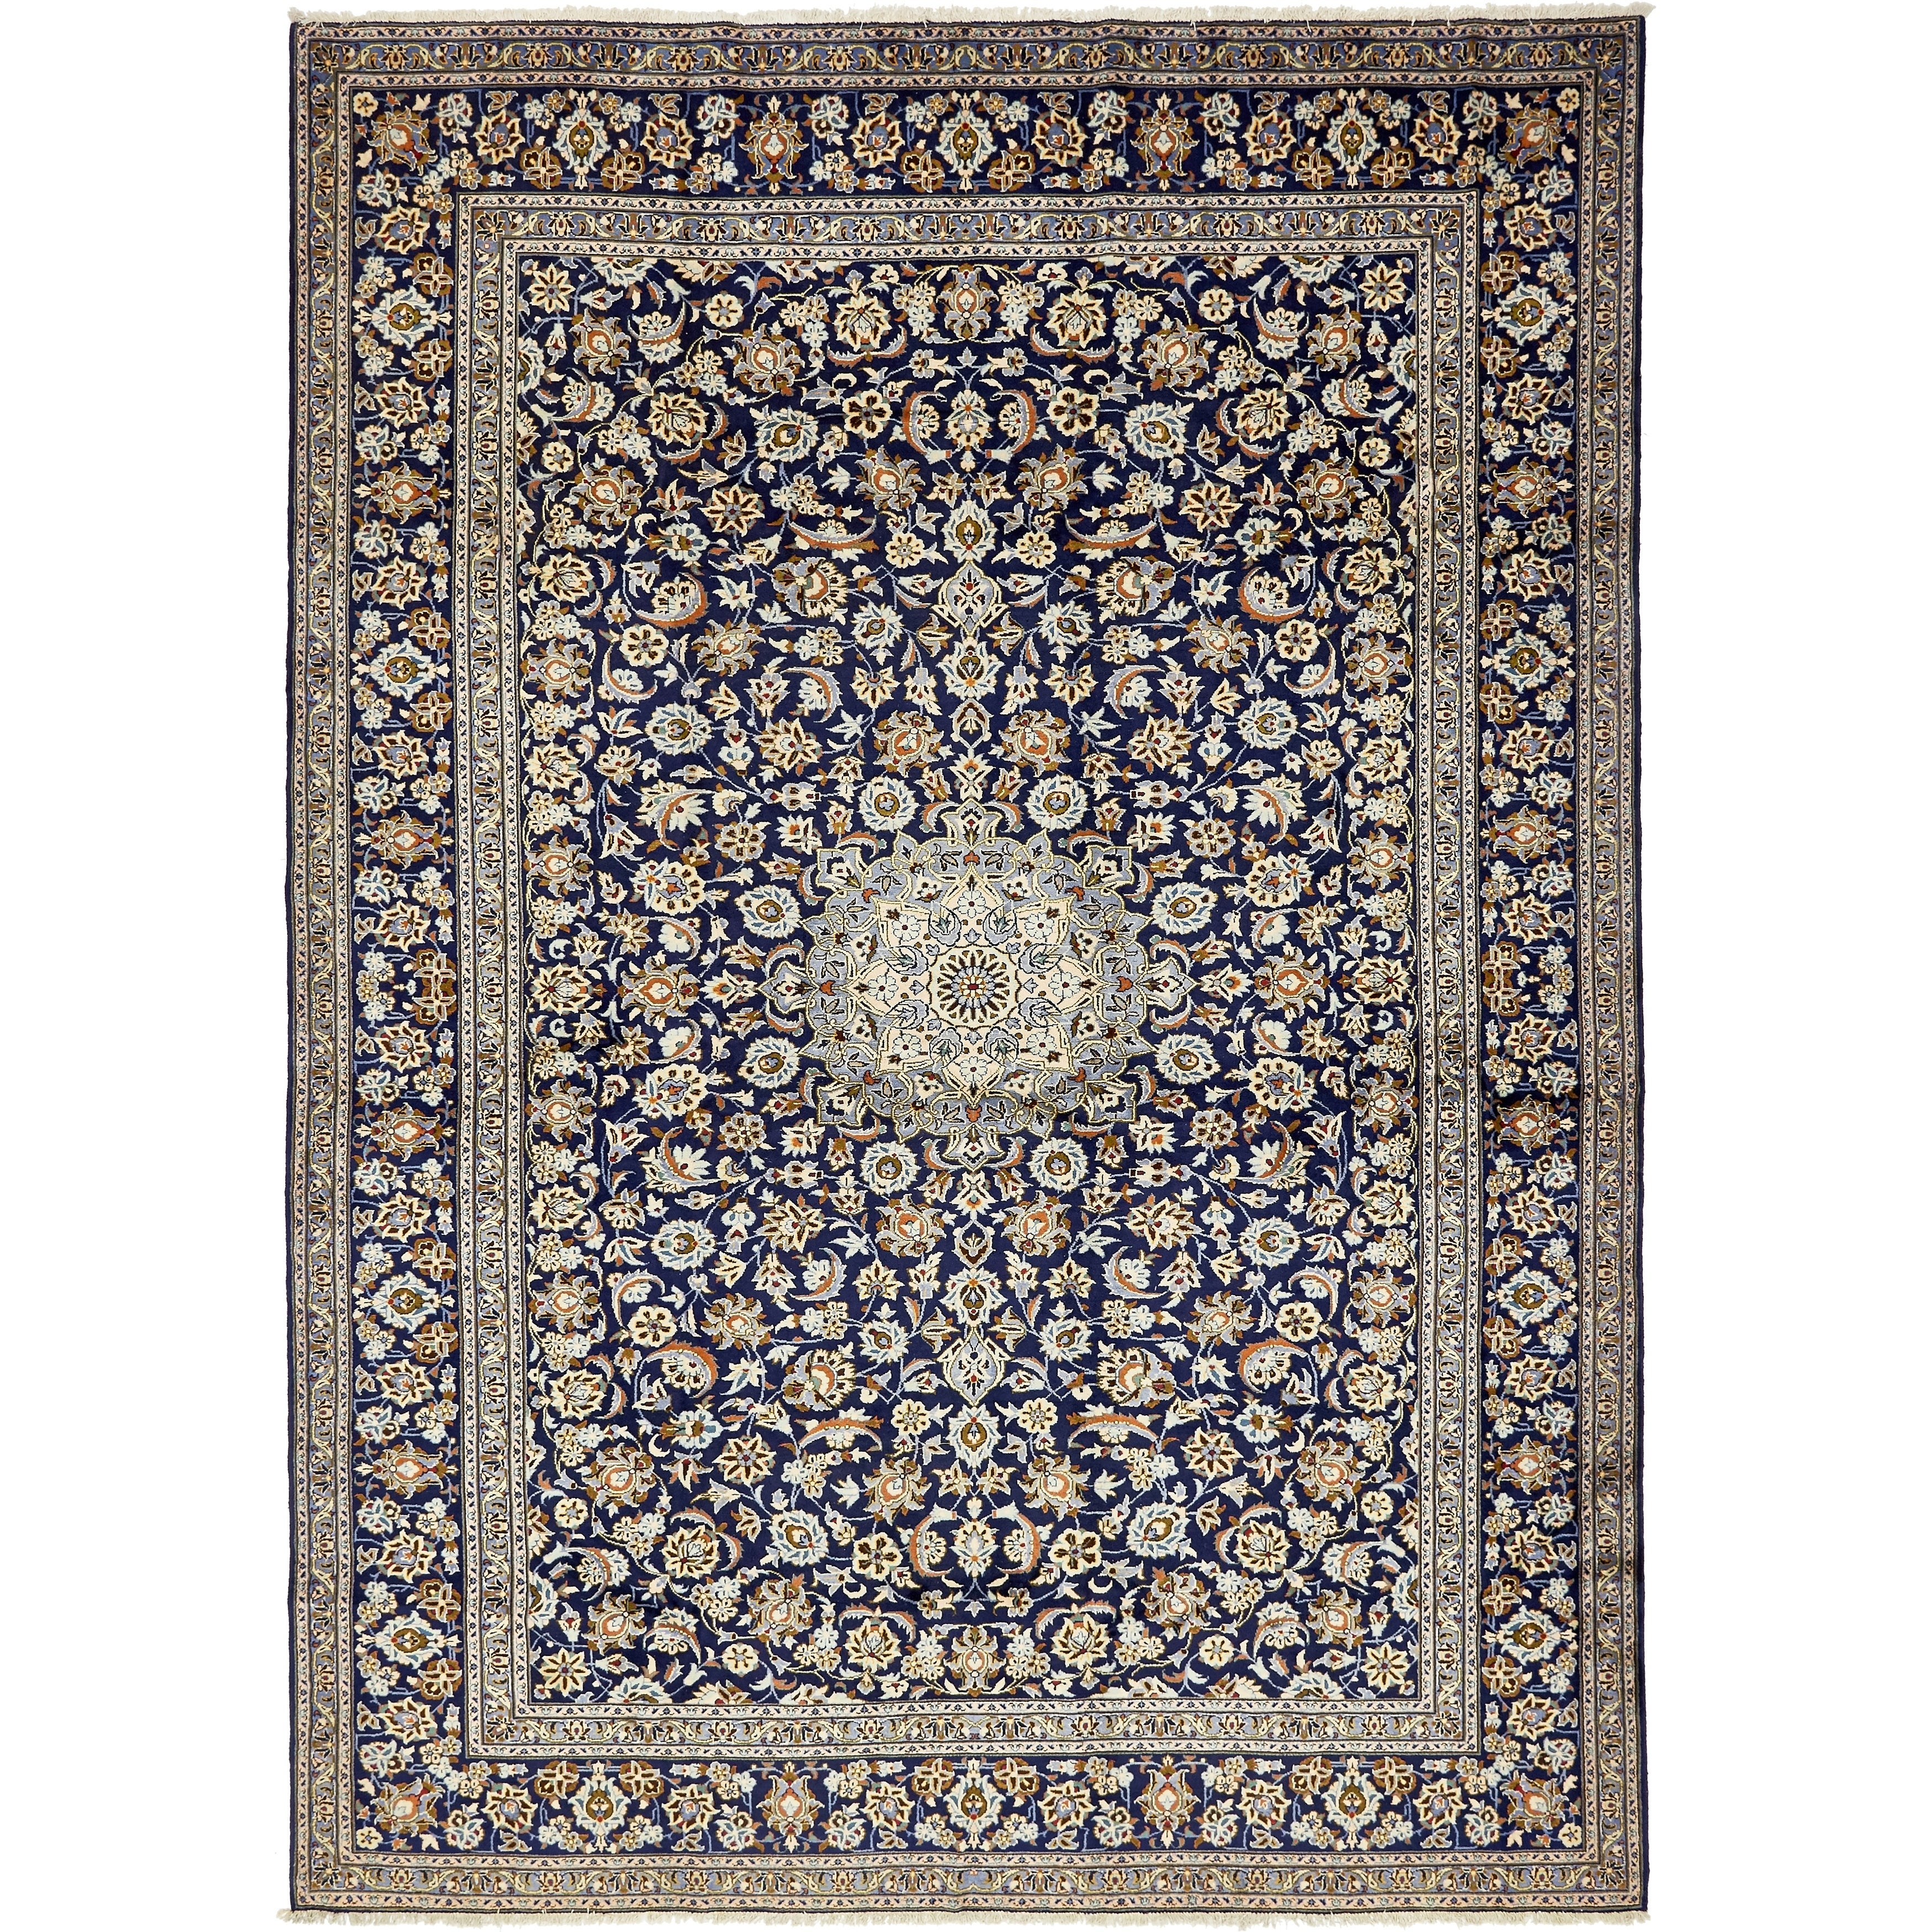 Hand Knotted Kashan Wool Area Rug - 10' 1 x 14' (Navy blue - 10' 1 x 14')